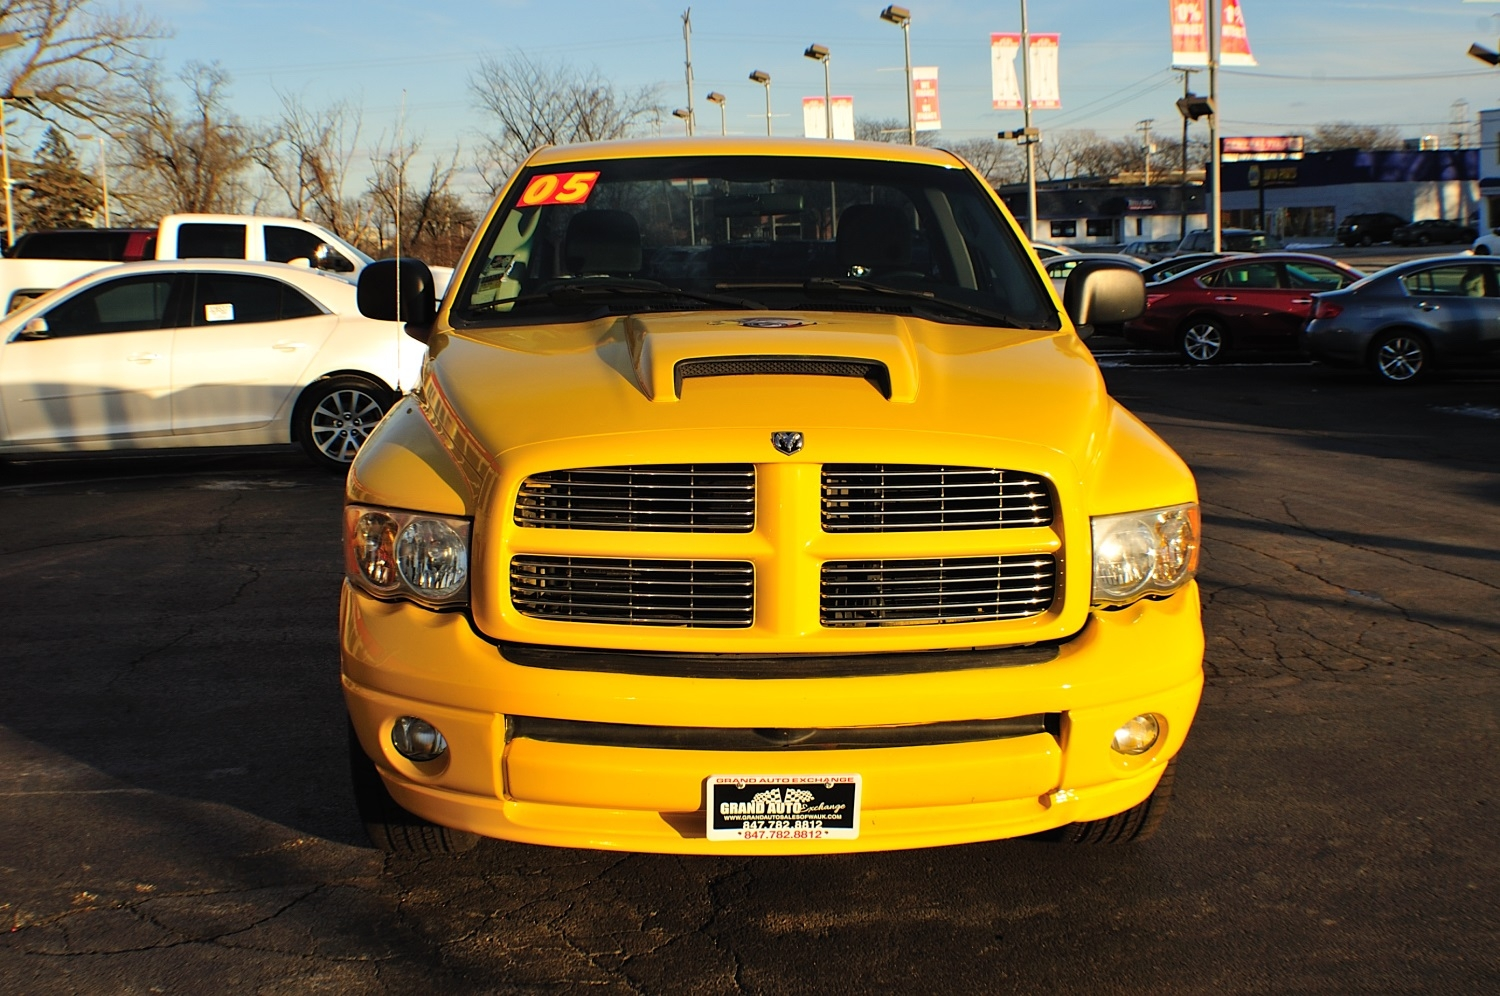 2005 Dodge Ram Yellow Rumble Bee used truck sale Gurnee Kenosha Mchenry Chicago Illinois